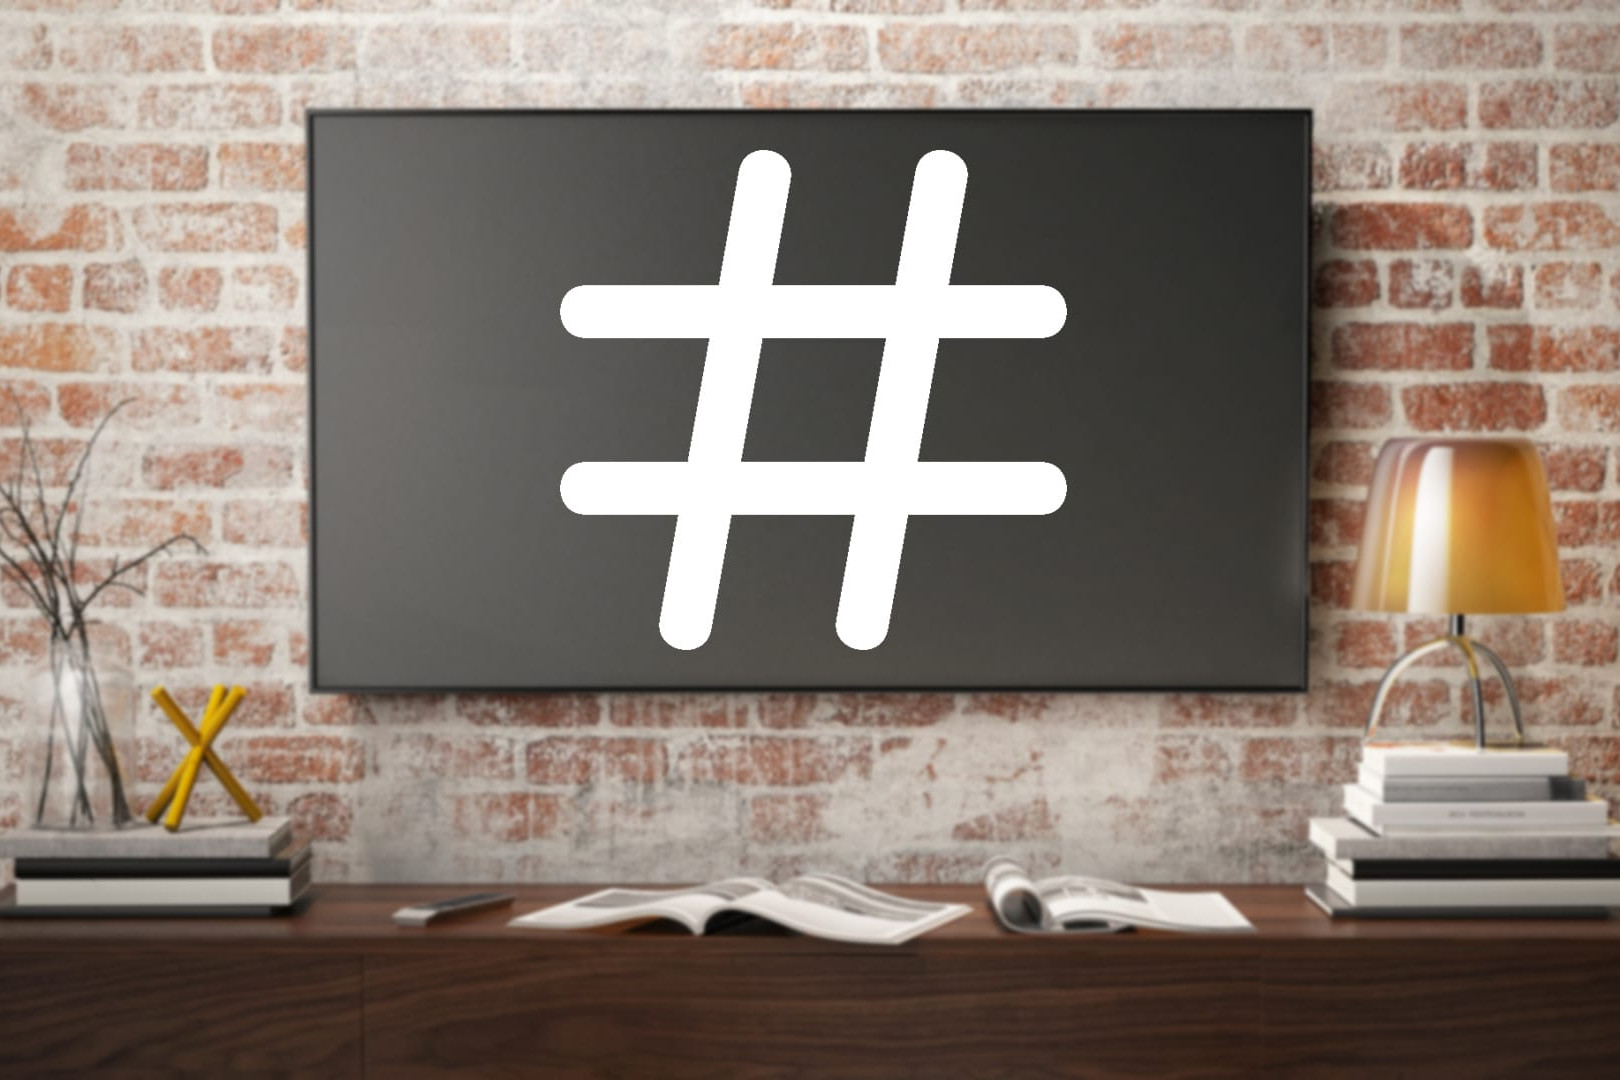 Boost user engagement with hashtags